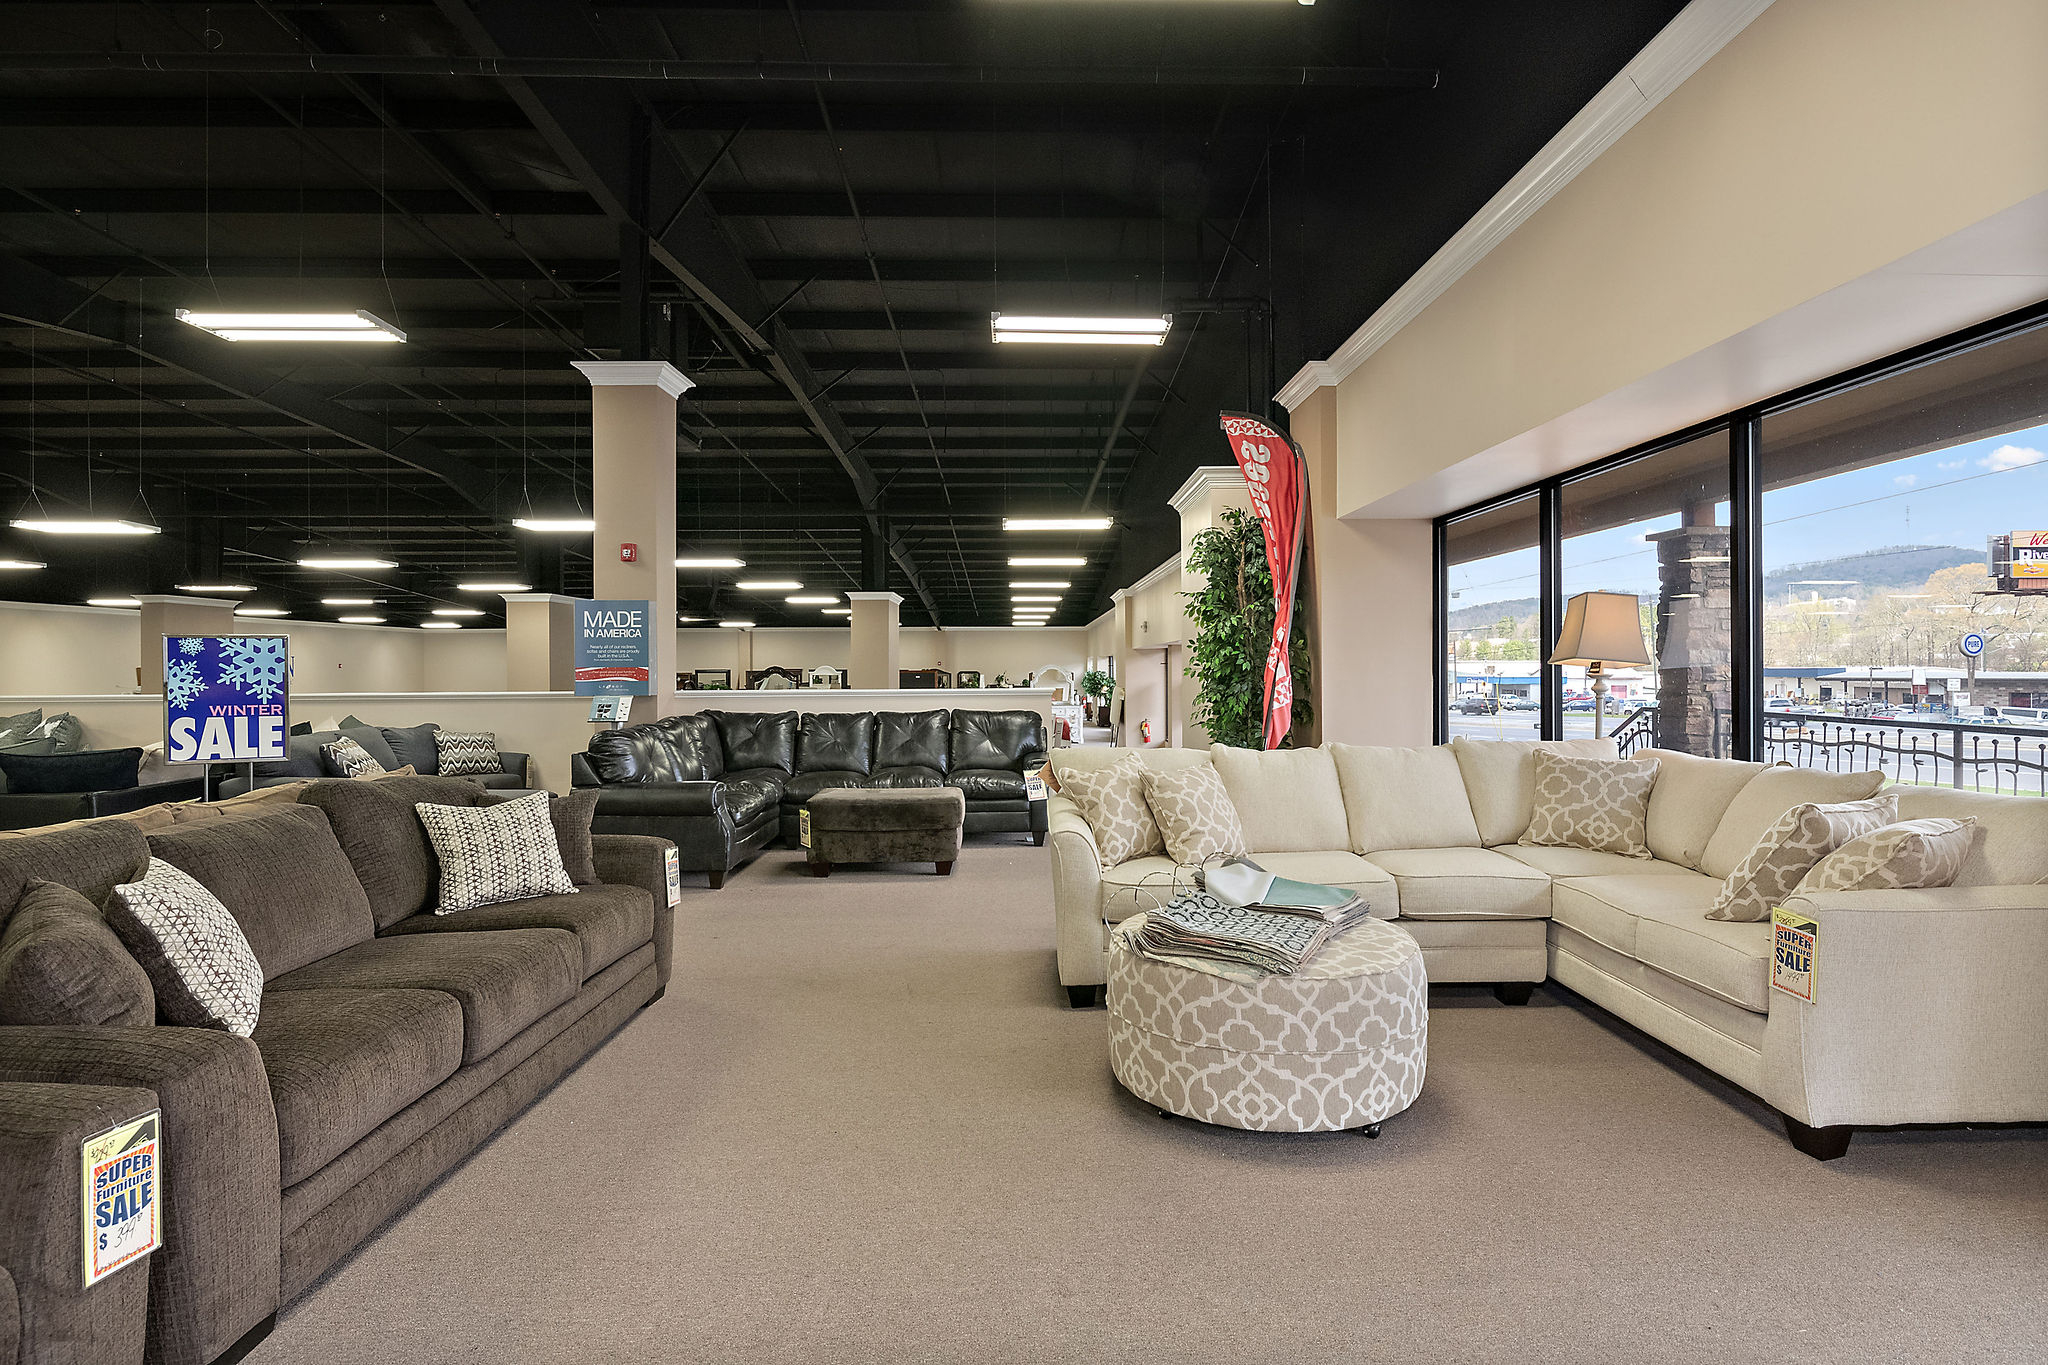 Nelson'S Home Furnishing | Graham Commercial Contractors intended for Nelsons Furniture Cartersville Ga